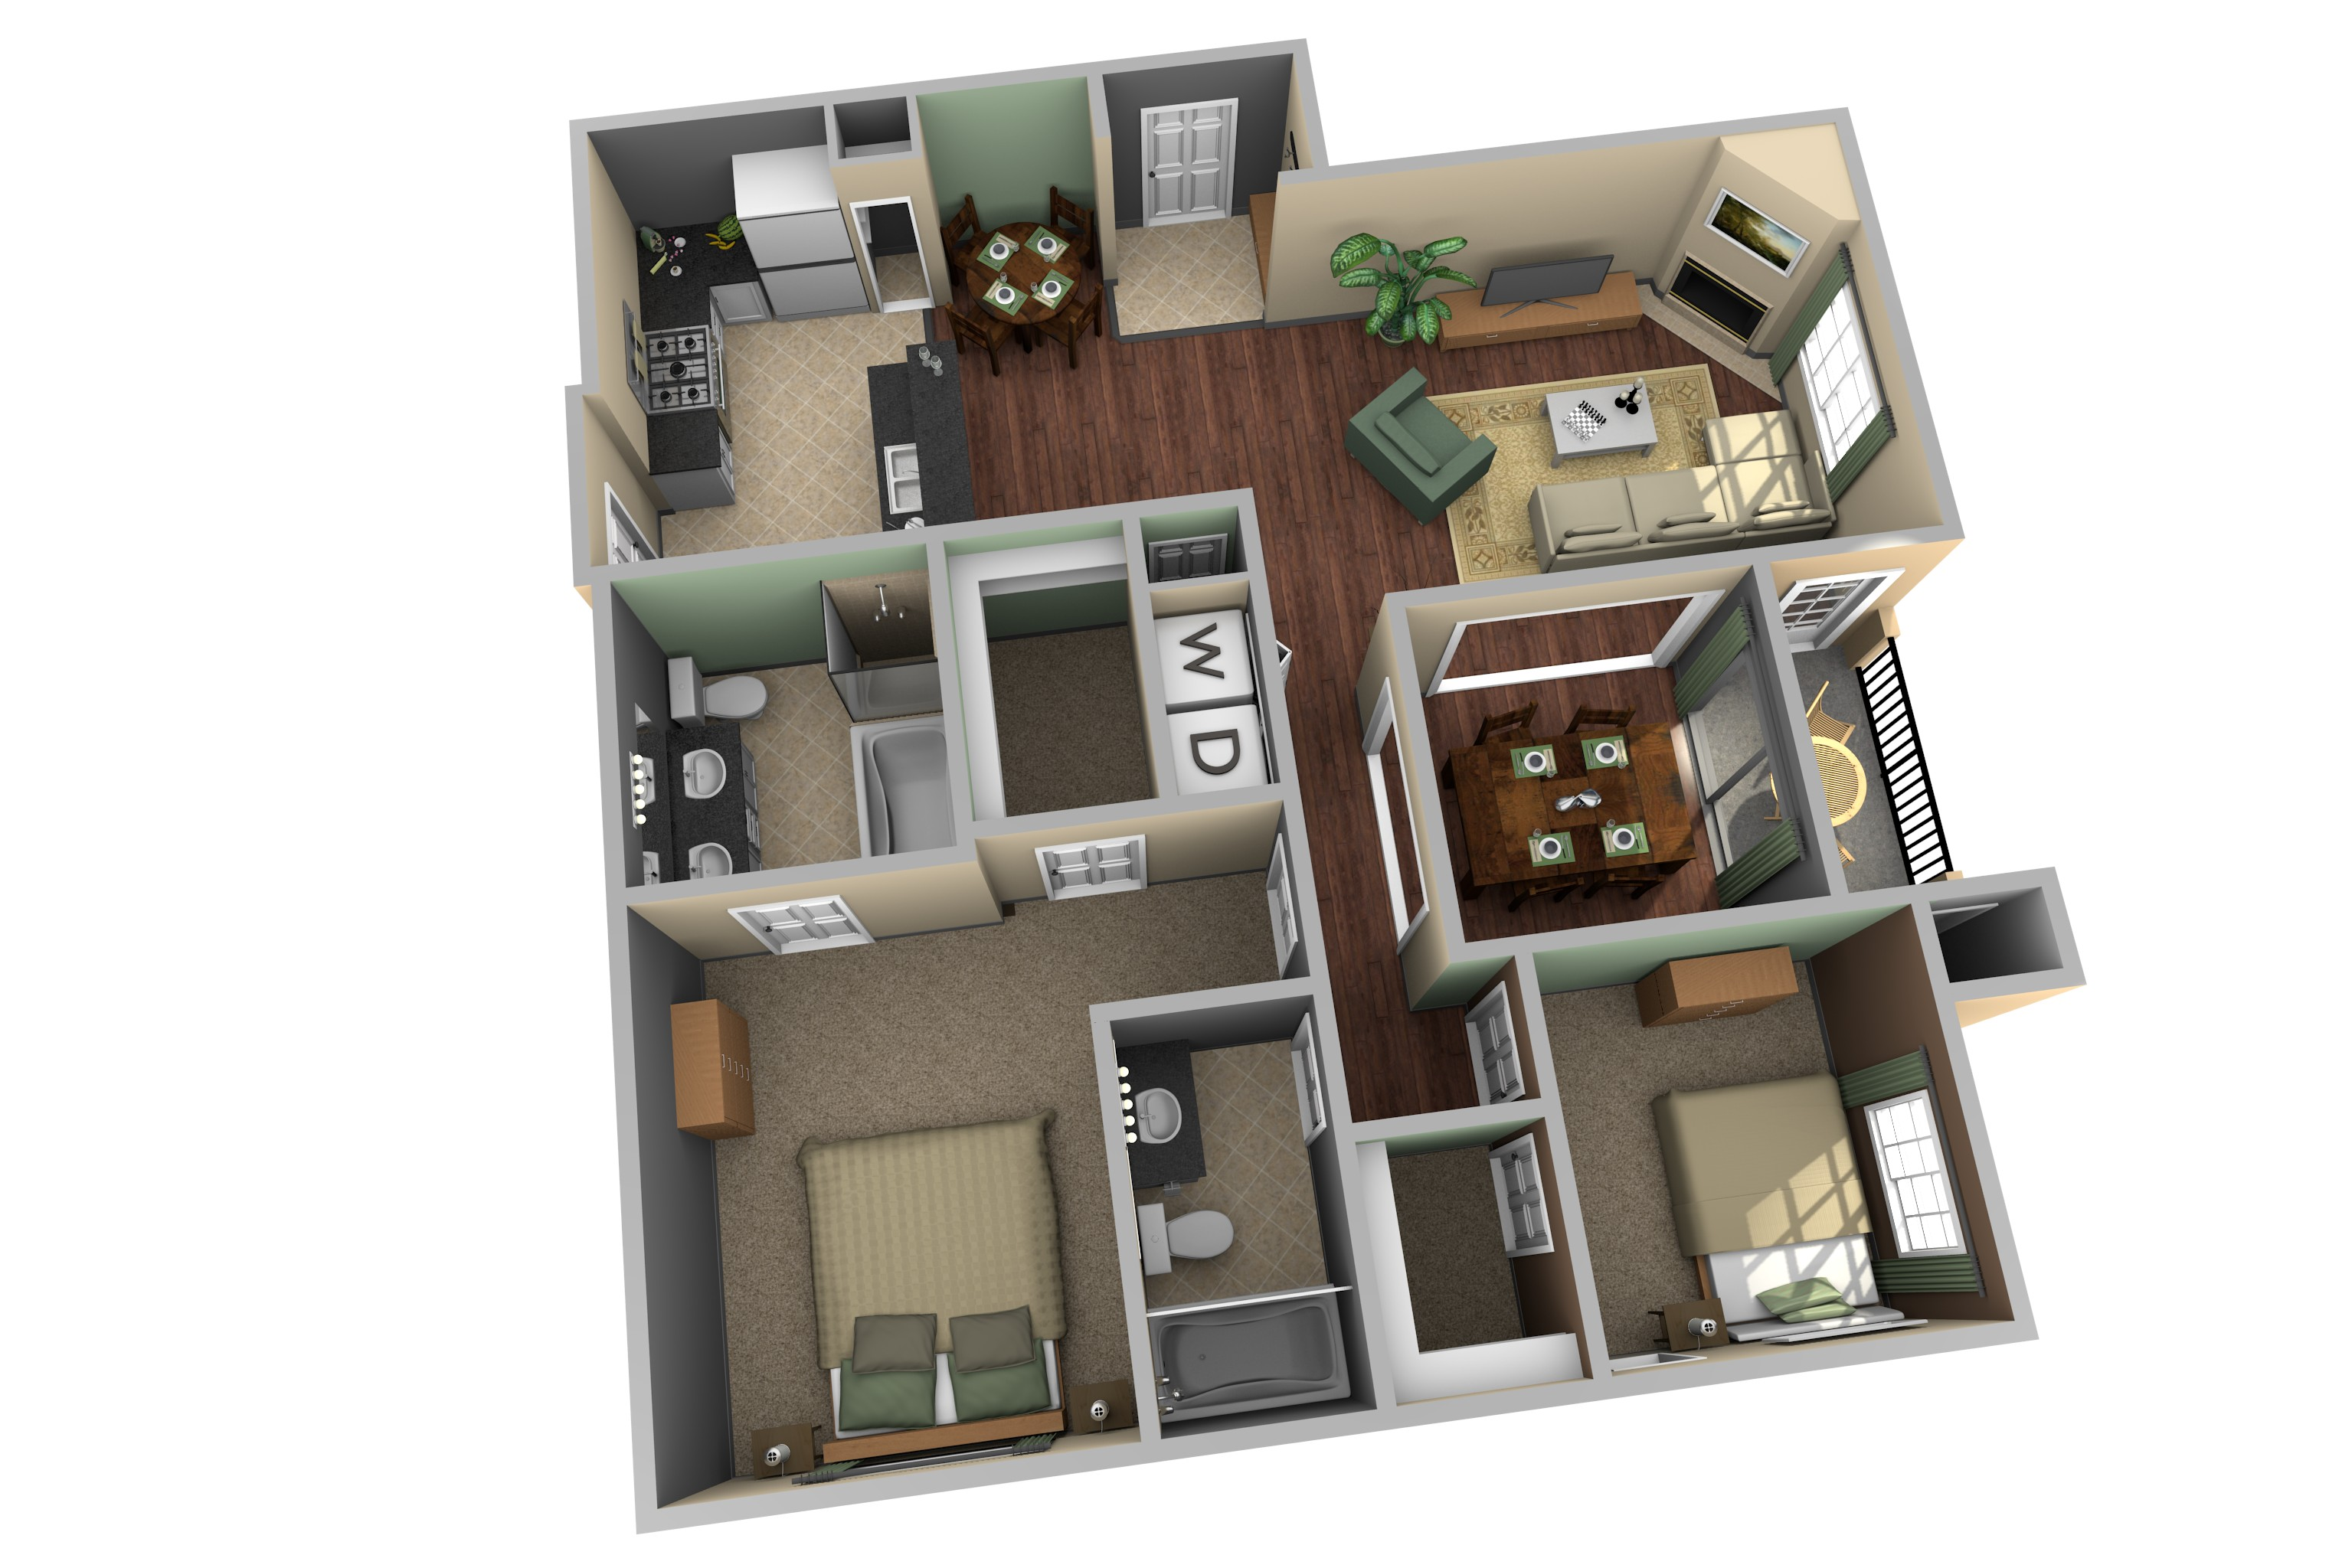 Example Of 3D Apartment Floor Plan. Allure   Magnolia 3. Allure   Magnolia 2